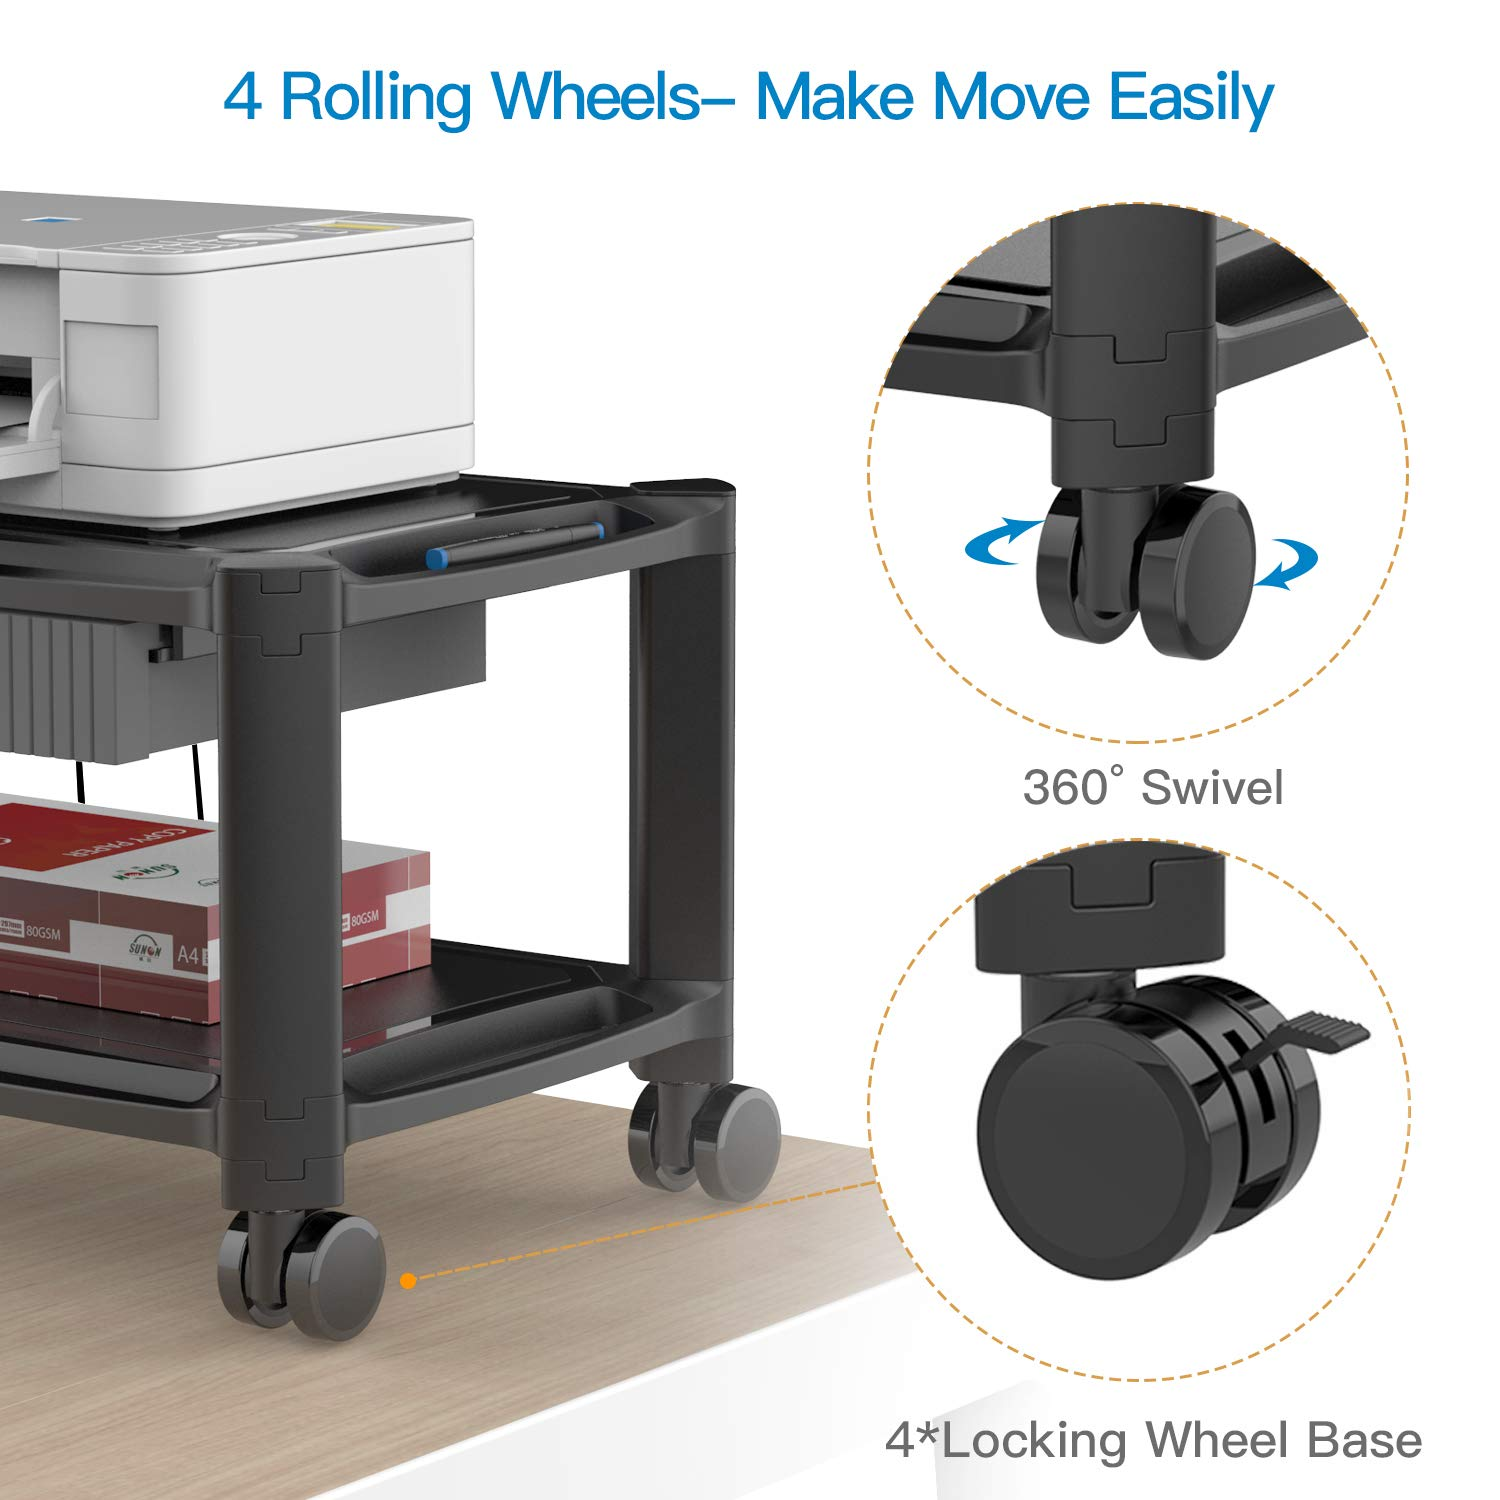 Printer Stand - Under Desk Printer Cart with 4 Rolling Wheels & Storage Drawer, Durable Printer Riser Shelf for Fax, Scanner, Office Supplies by HUANUO by HUANUO (Image #2)